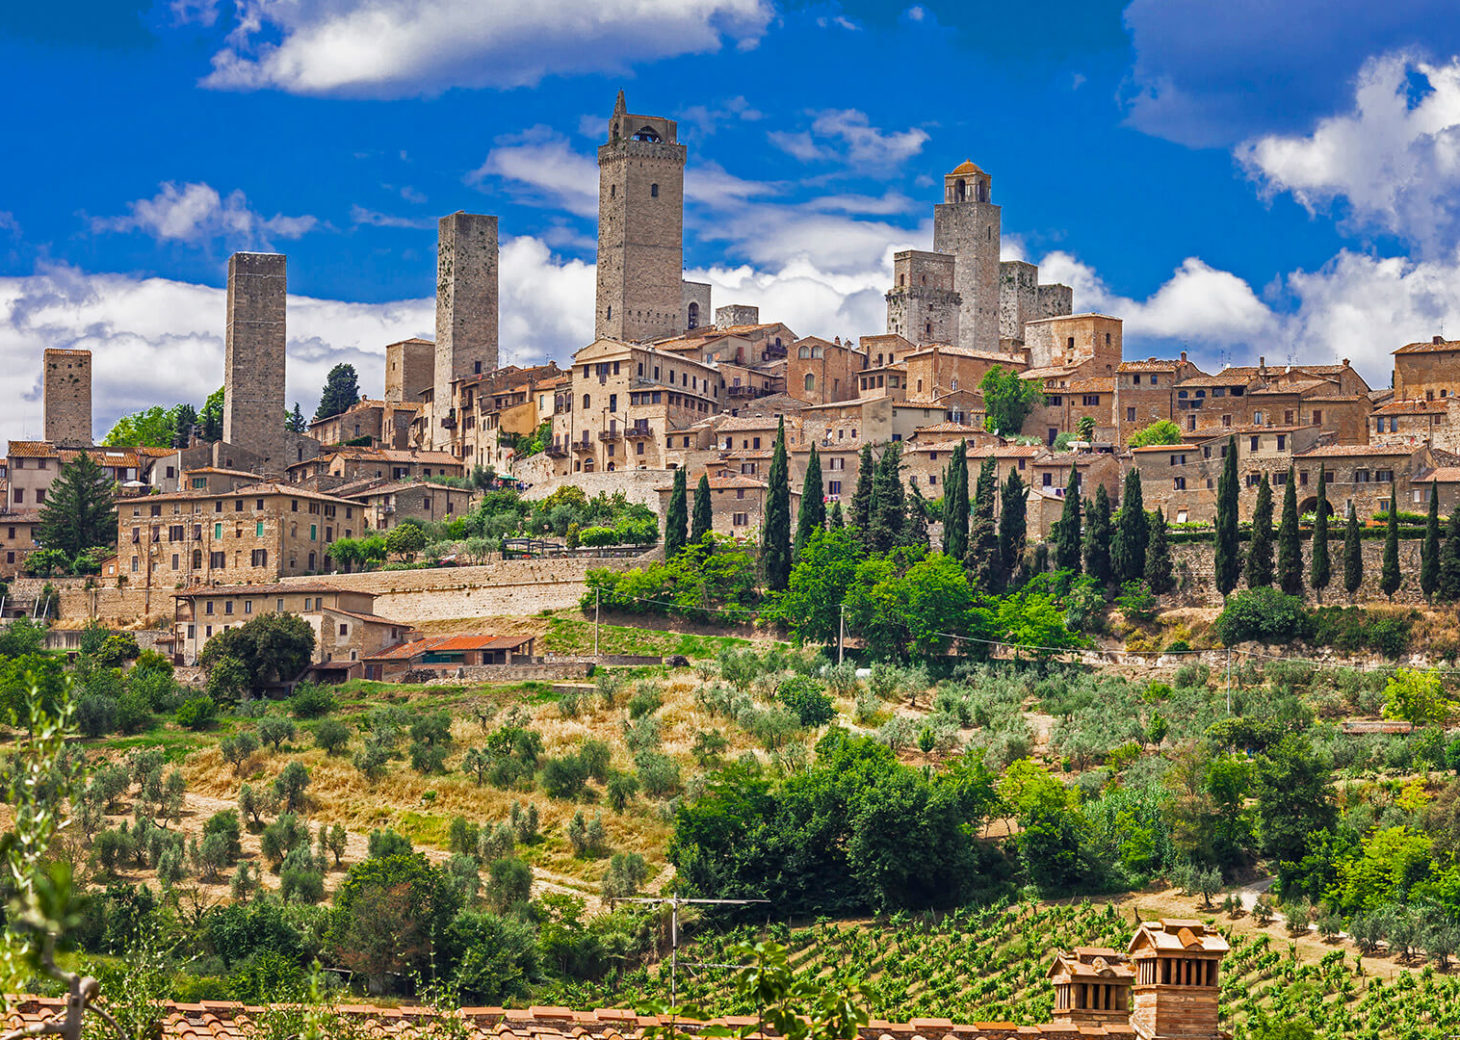 San Gimignano, the Manhattan of the Middle Age